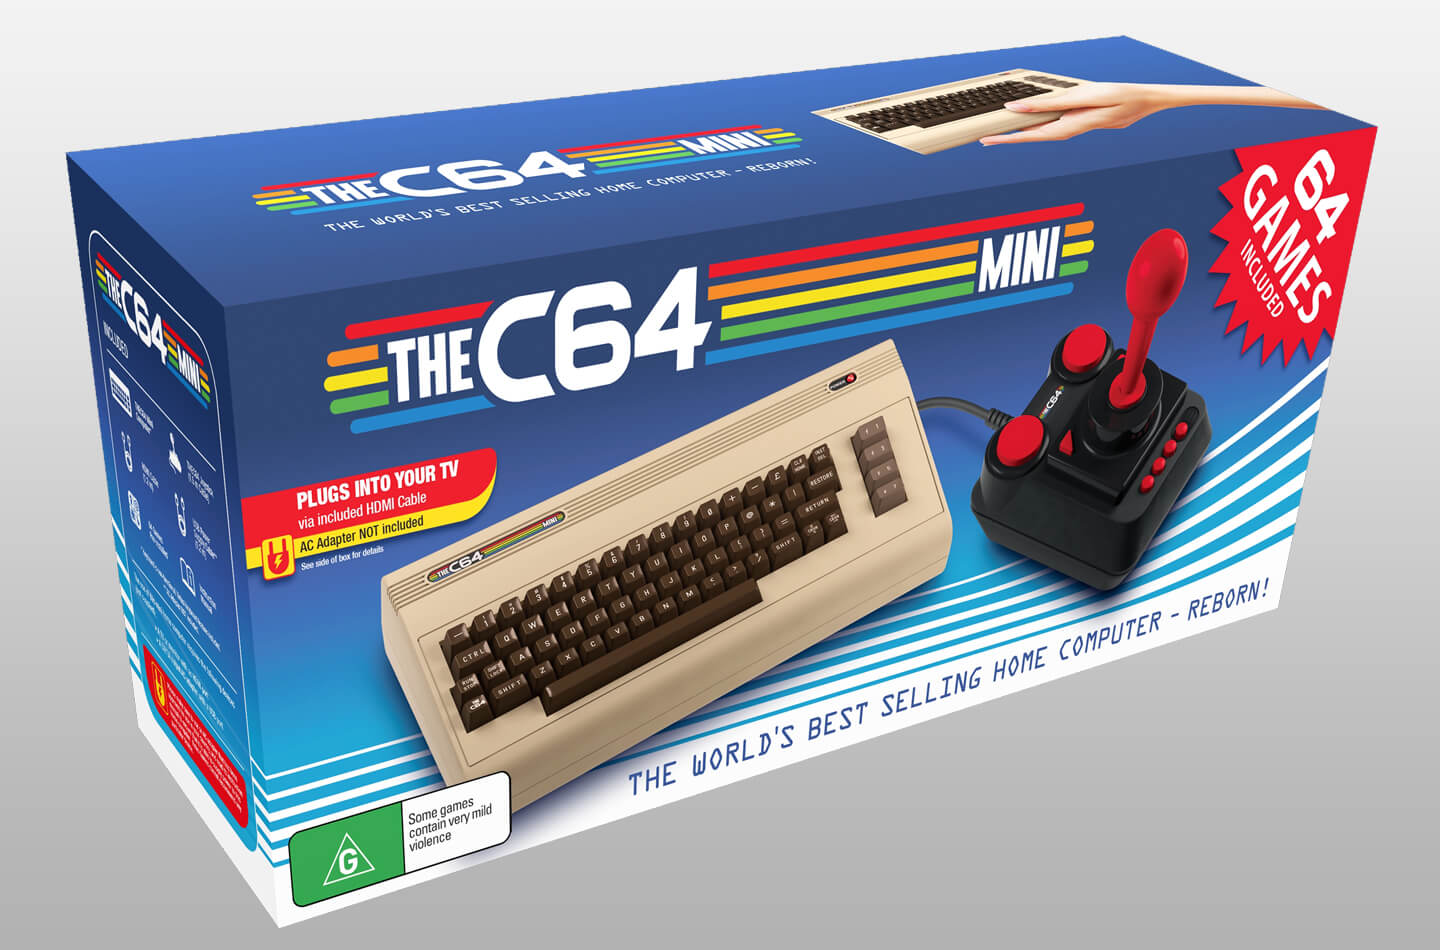 THEC64 mini review